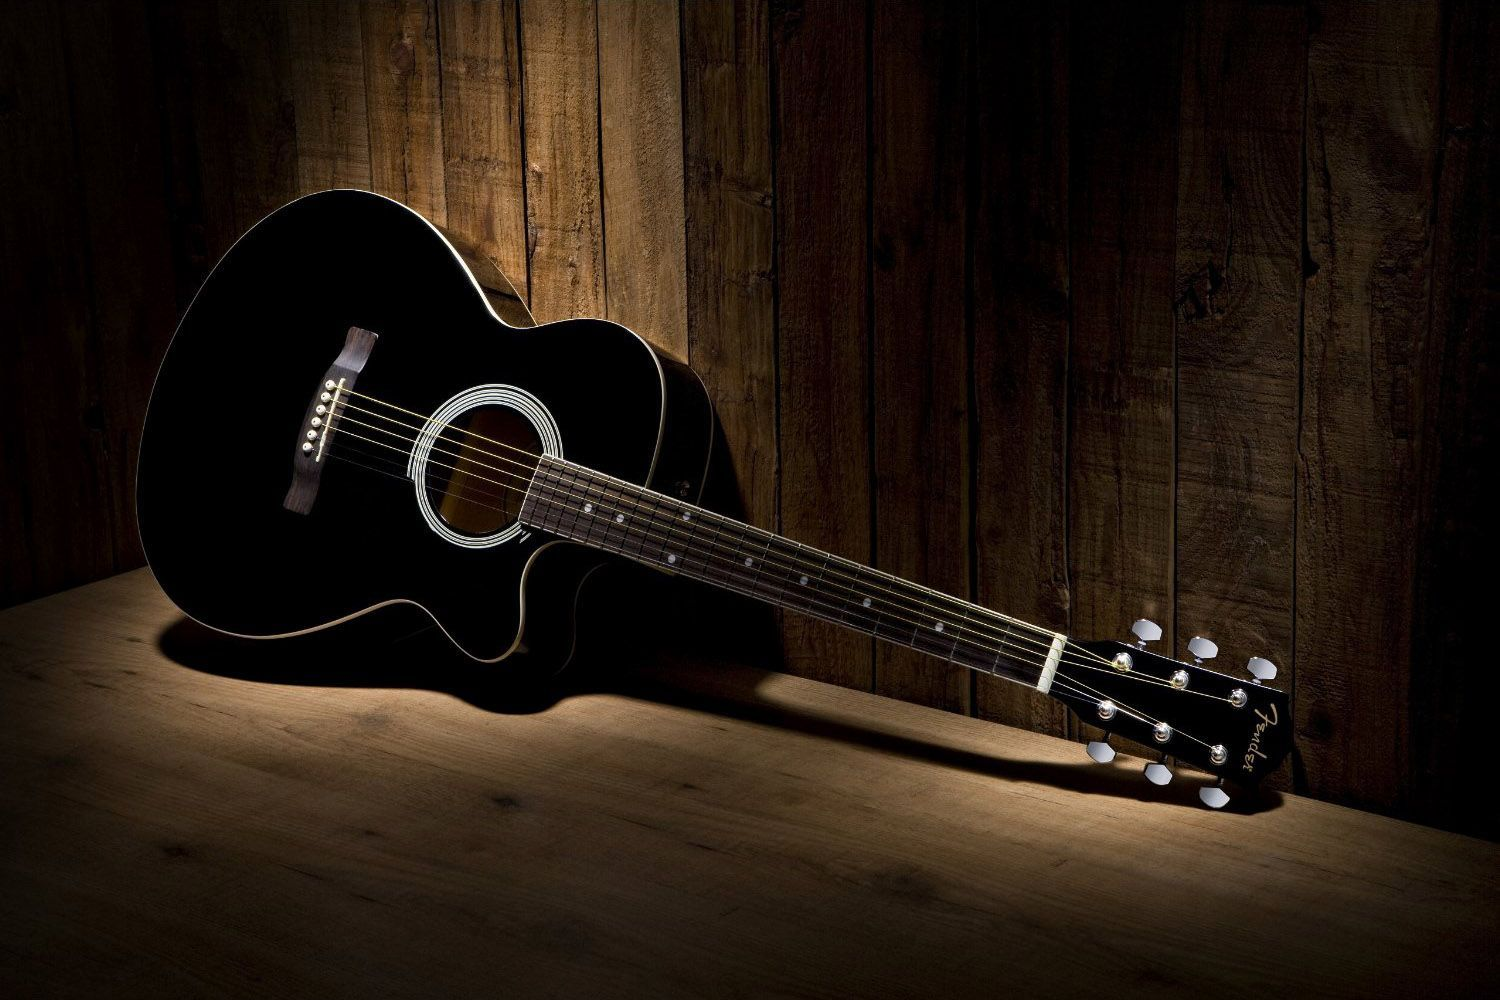 Guitar HD Wallpaper Download